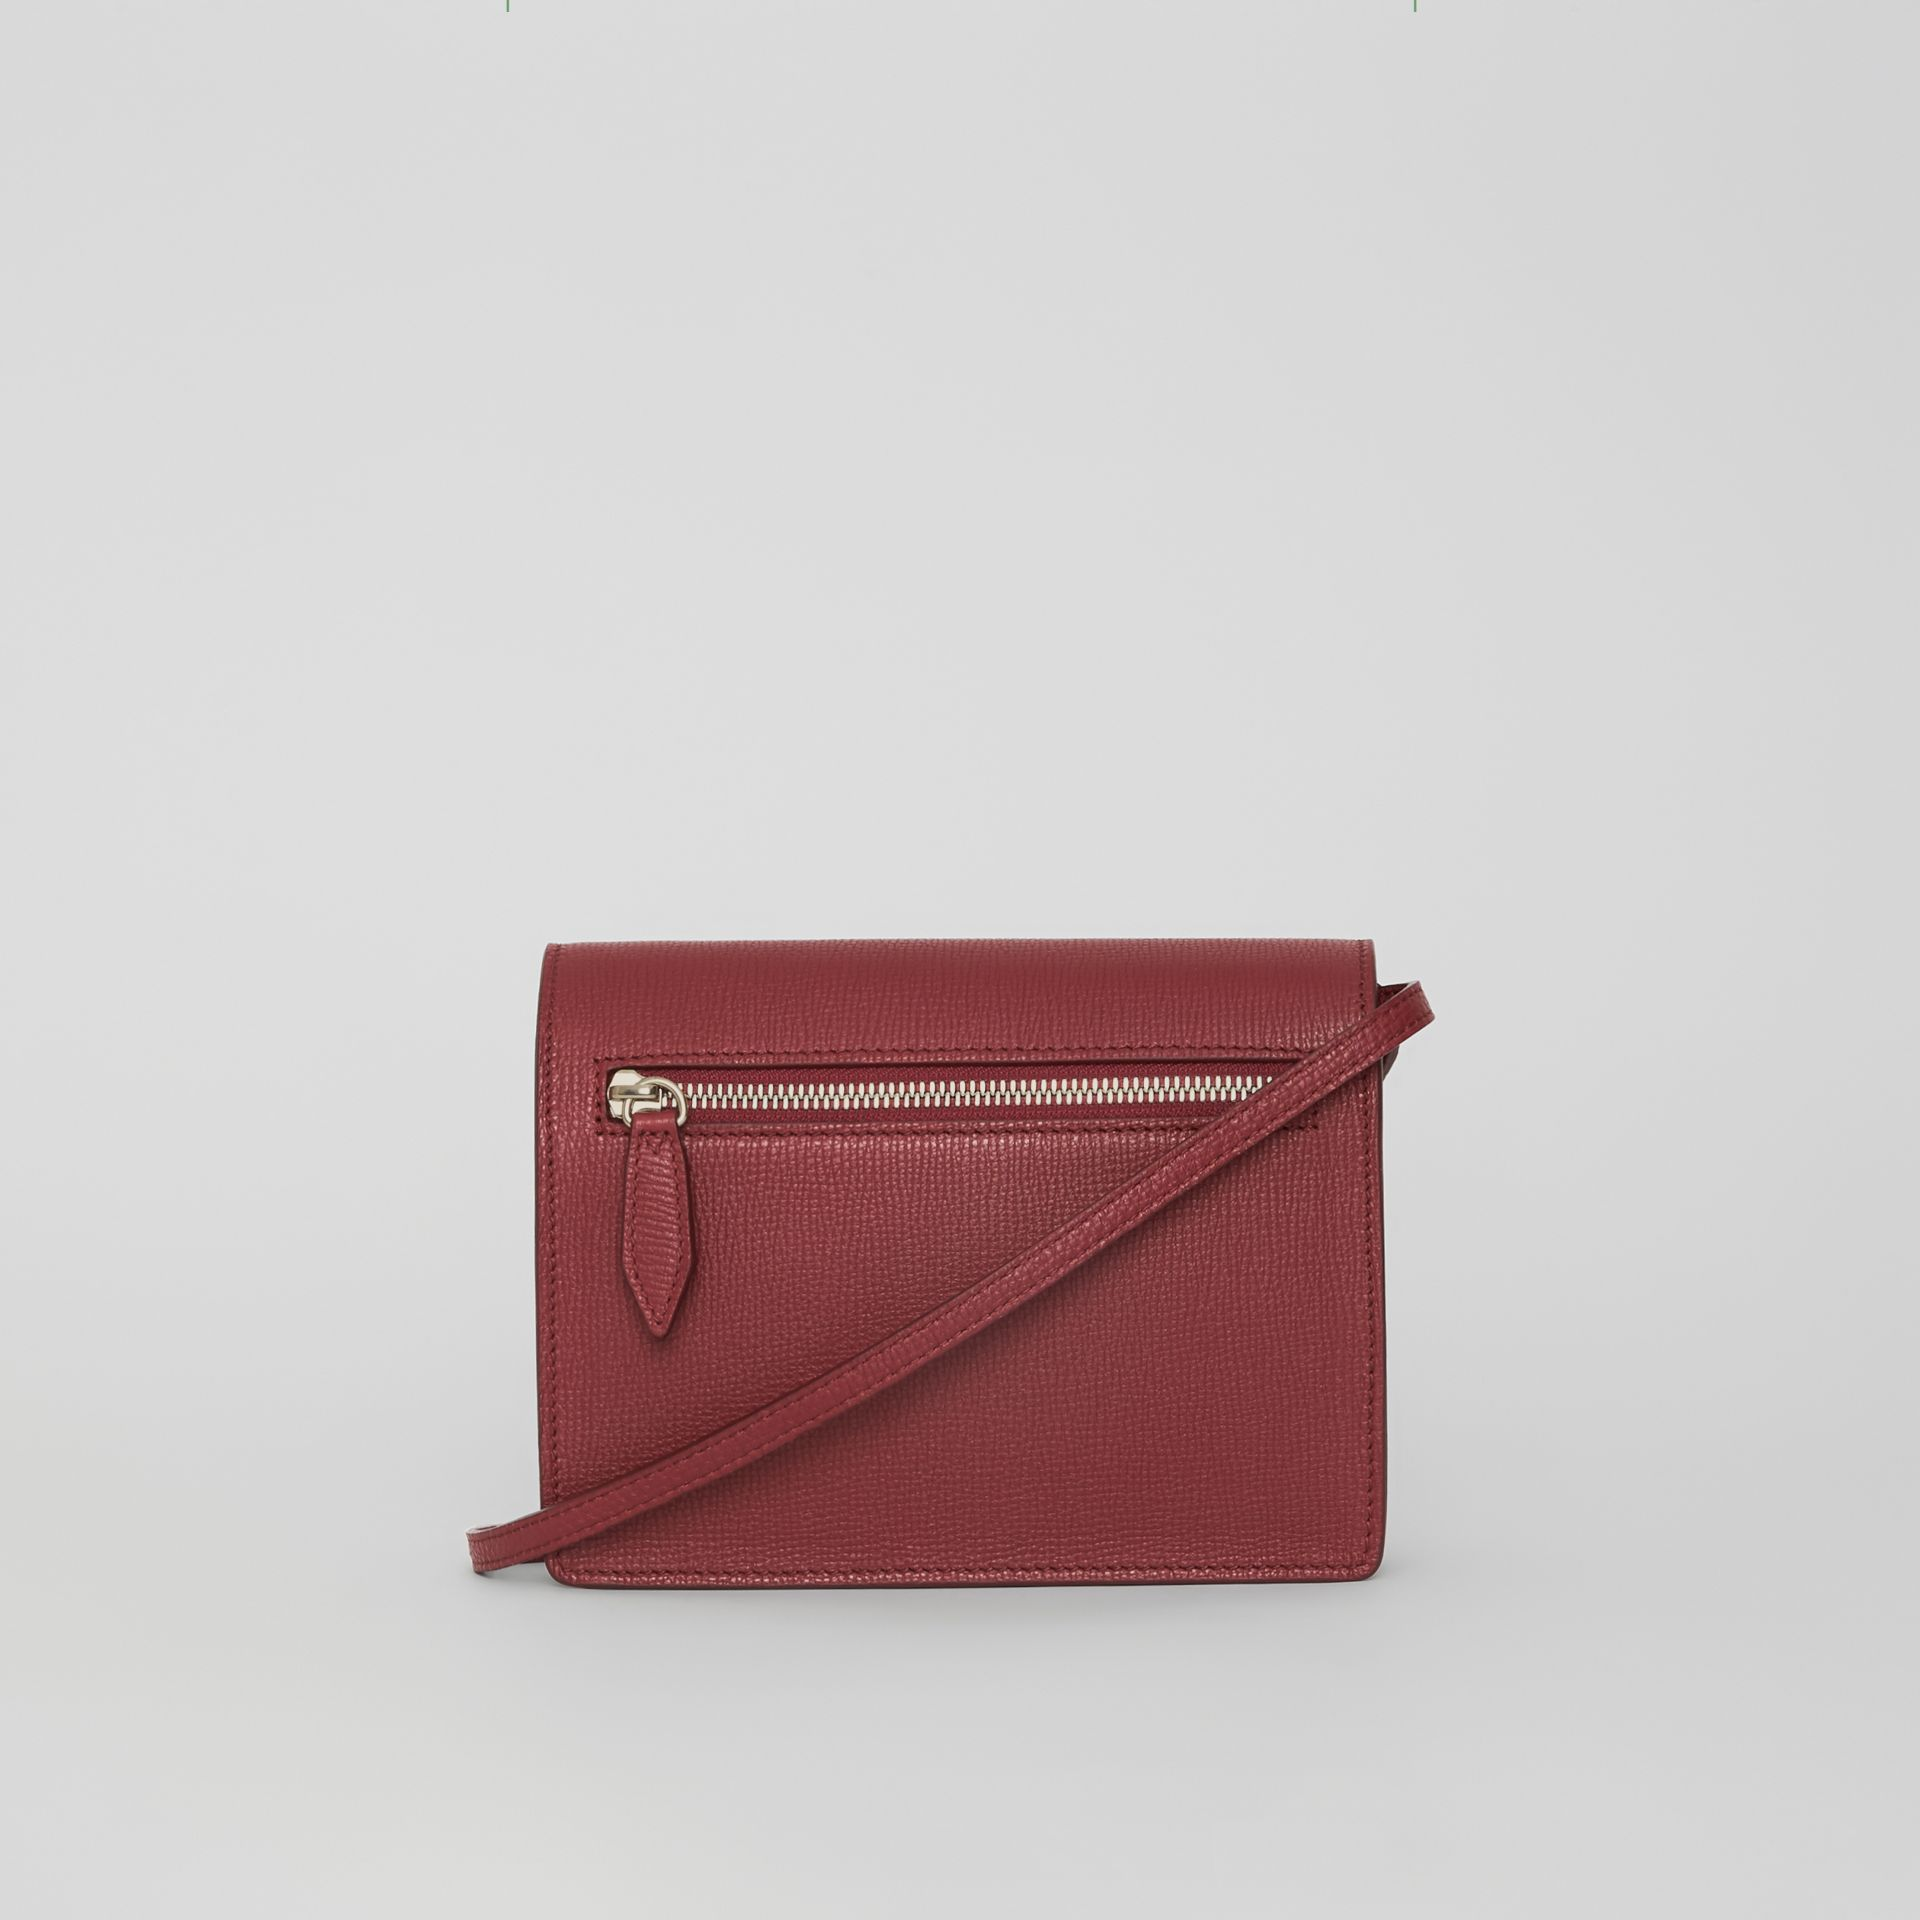 Mini Leather and Vintage Check Crossbody Bag in Crimson - Women | Burberry Australia - gallery image 6